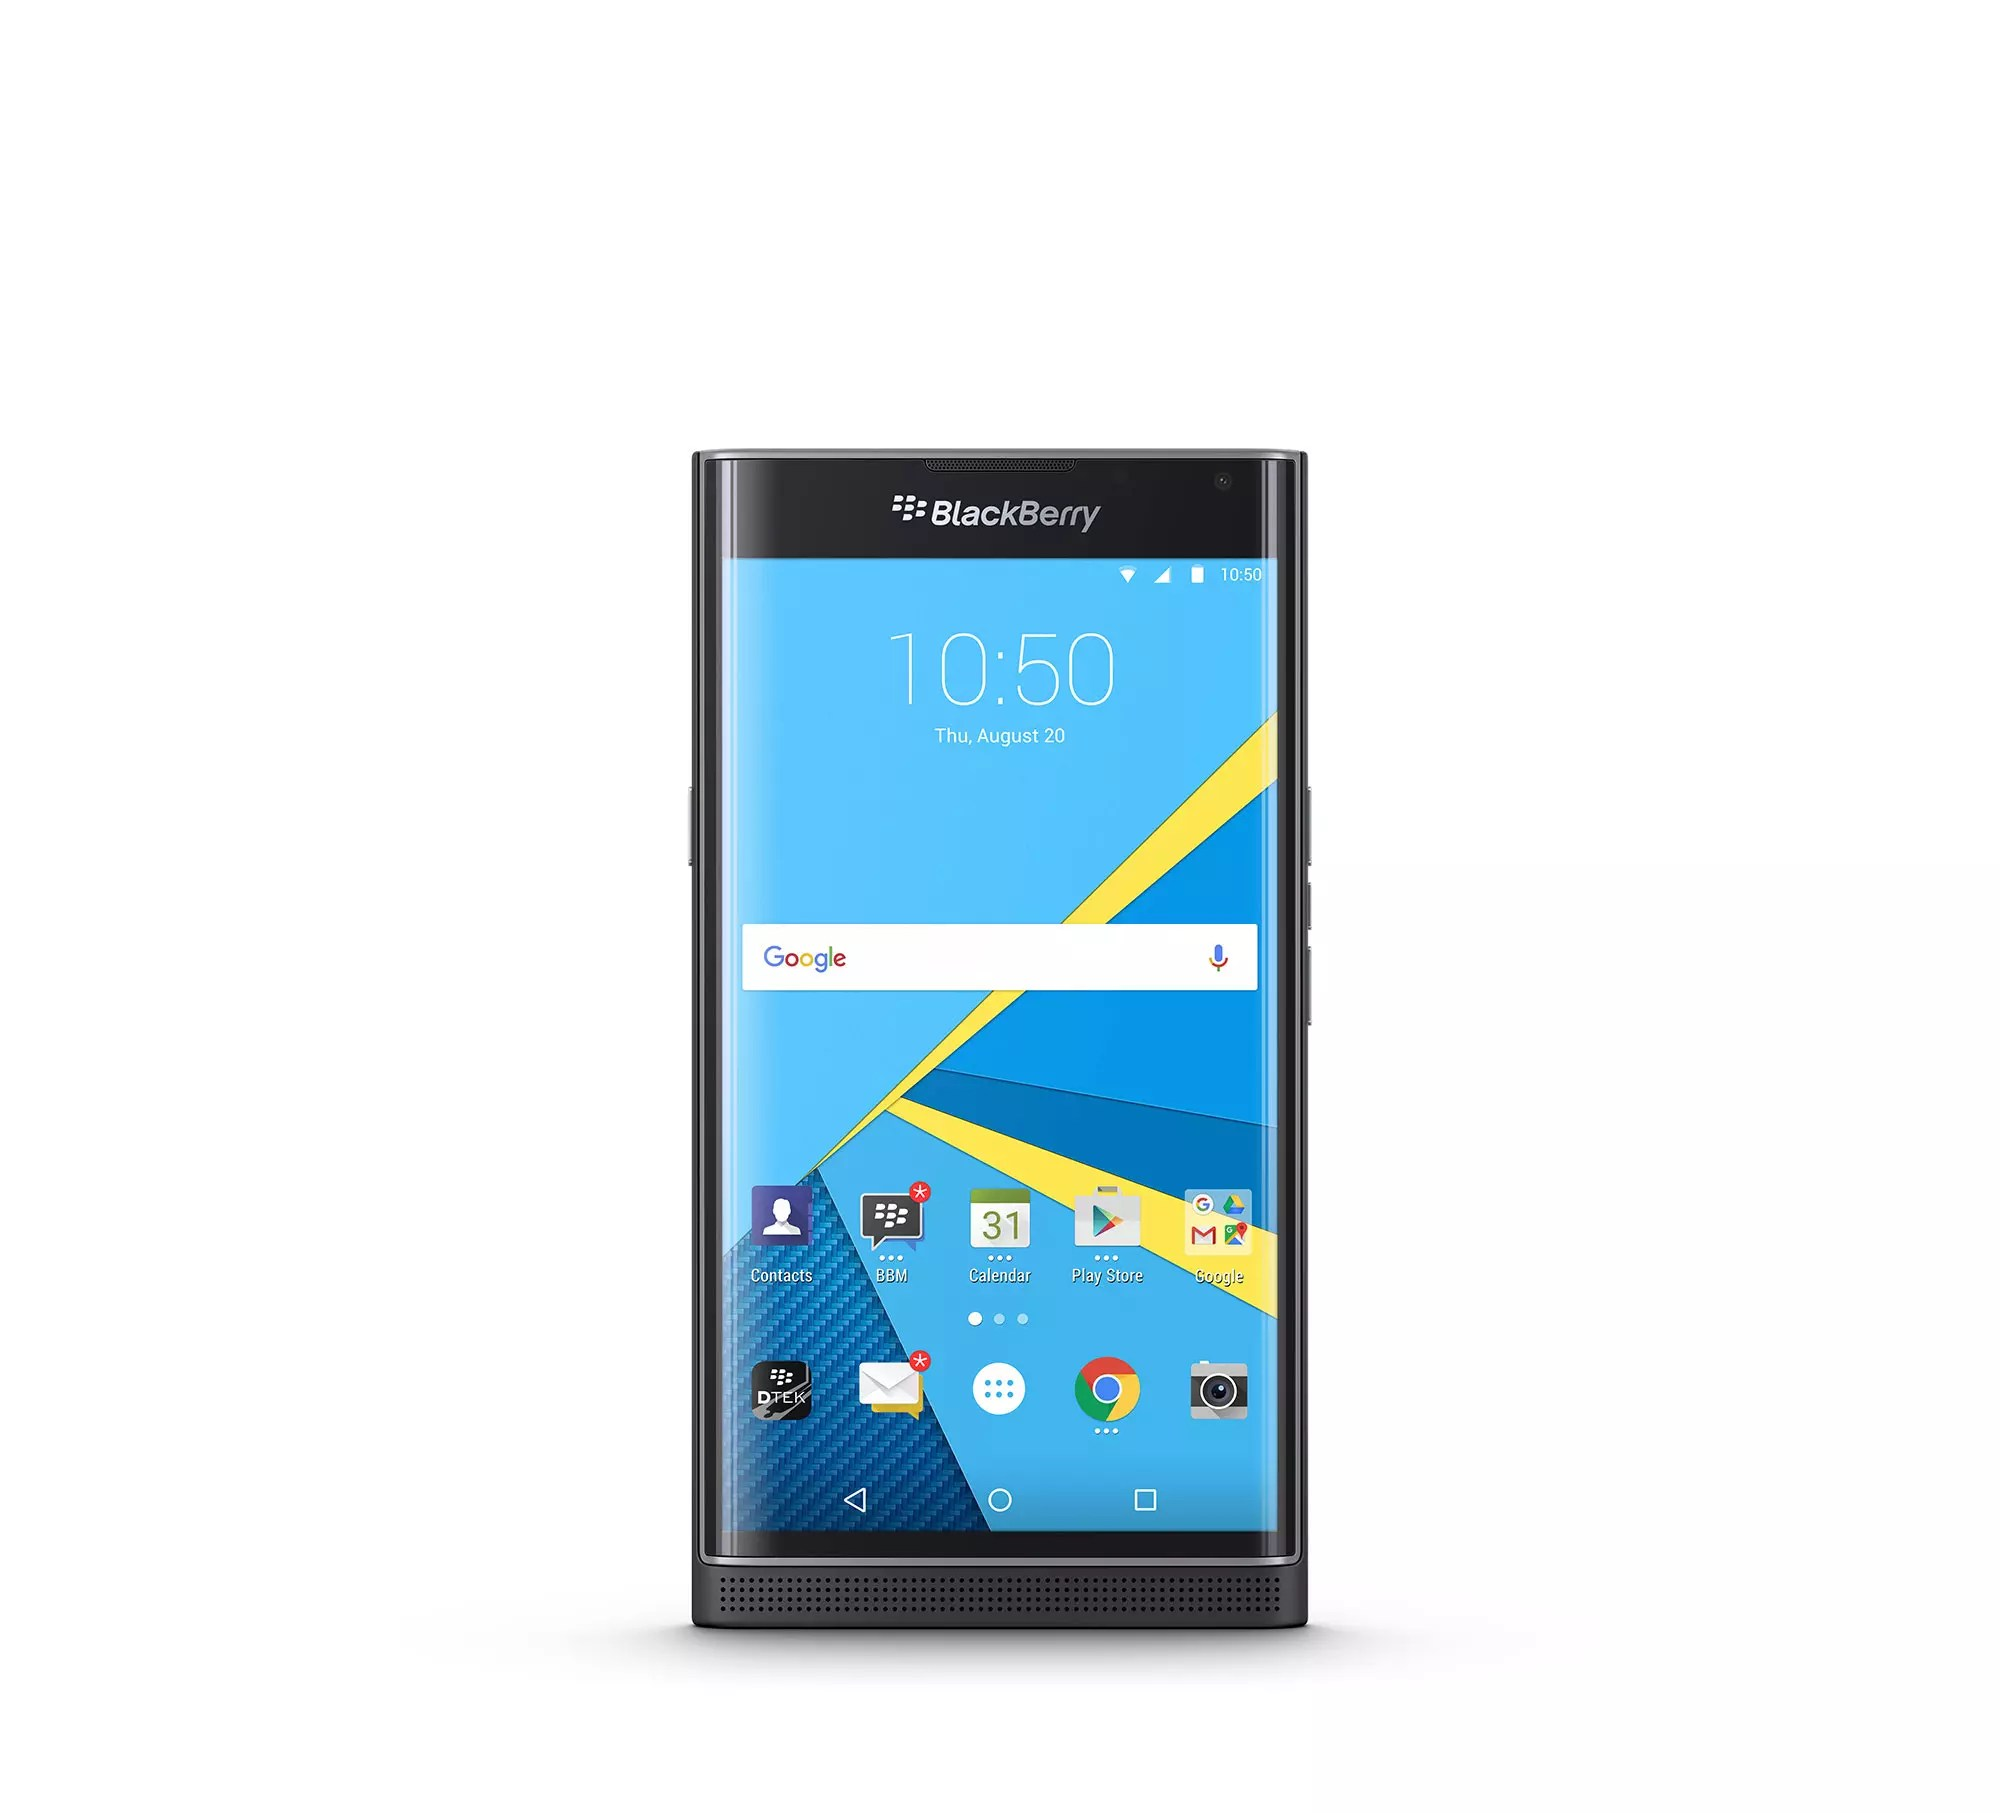 Moviles Libres Blackberry Blackberry Priv Características